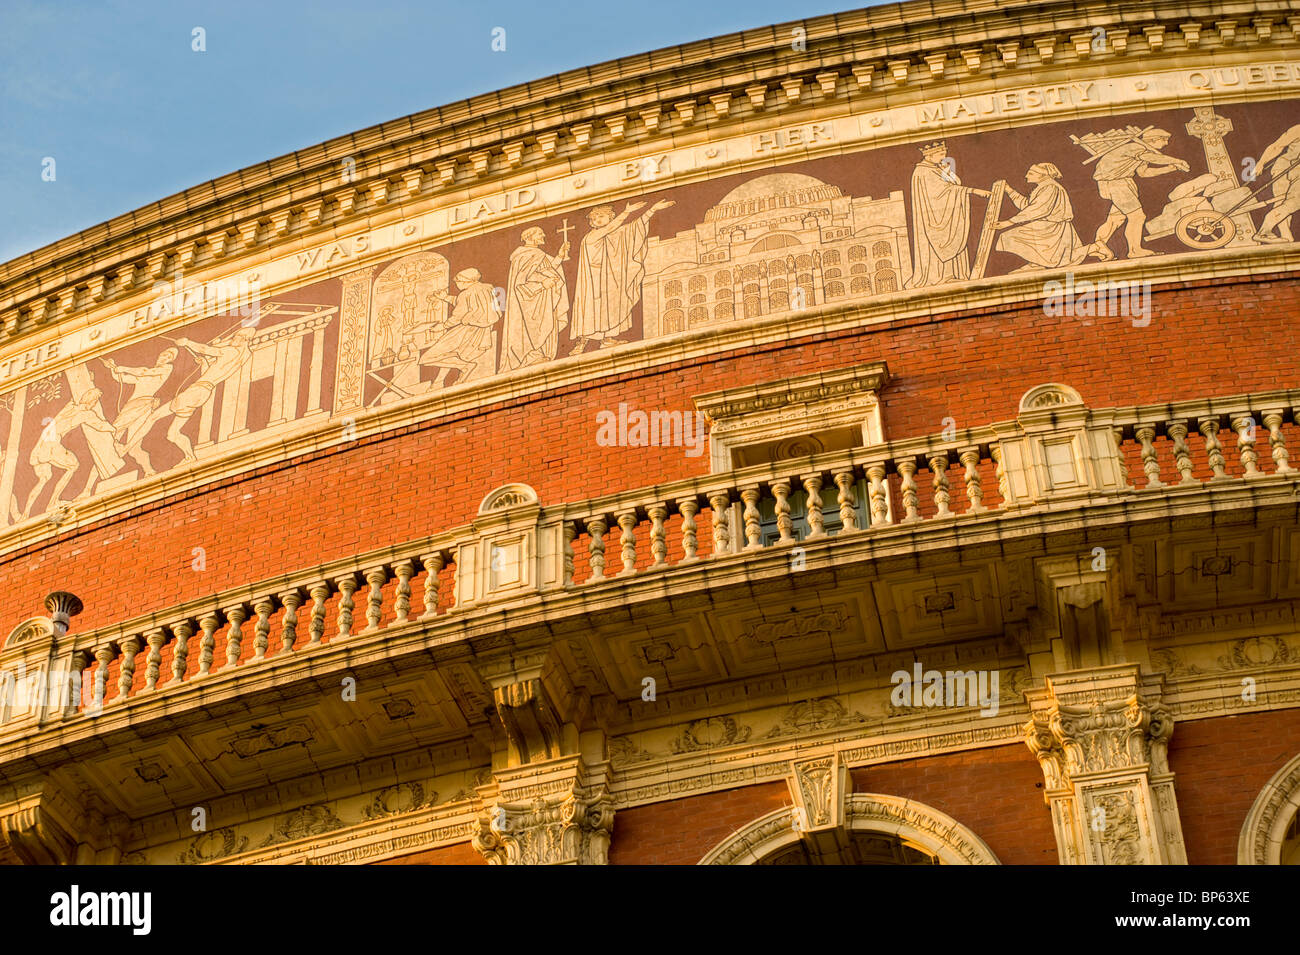 Detail of the exterior facade of the Royal Albert Hall in Kensington, London, England, UK. - Stock Image